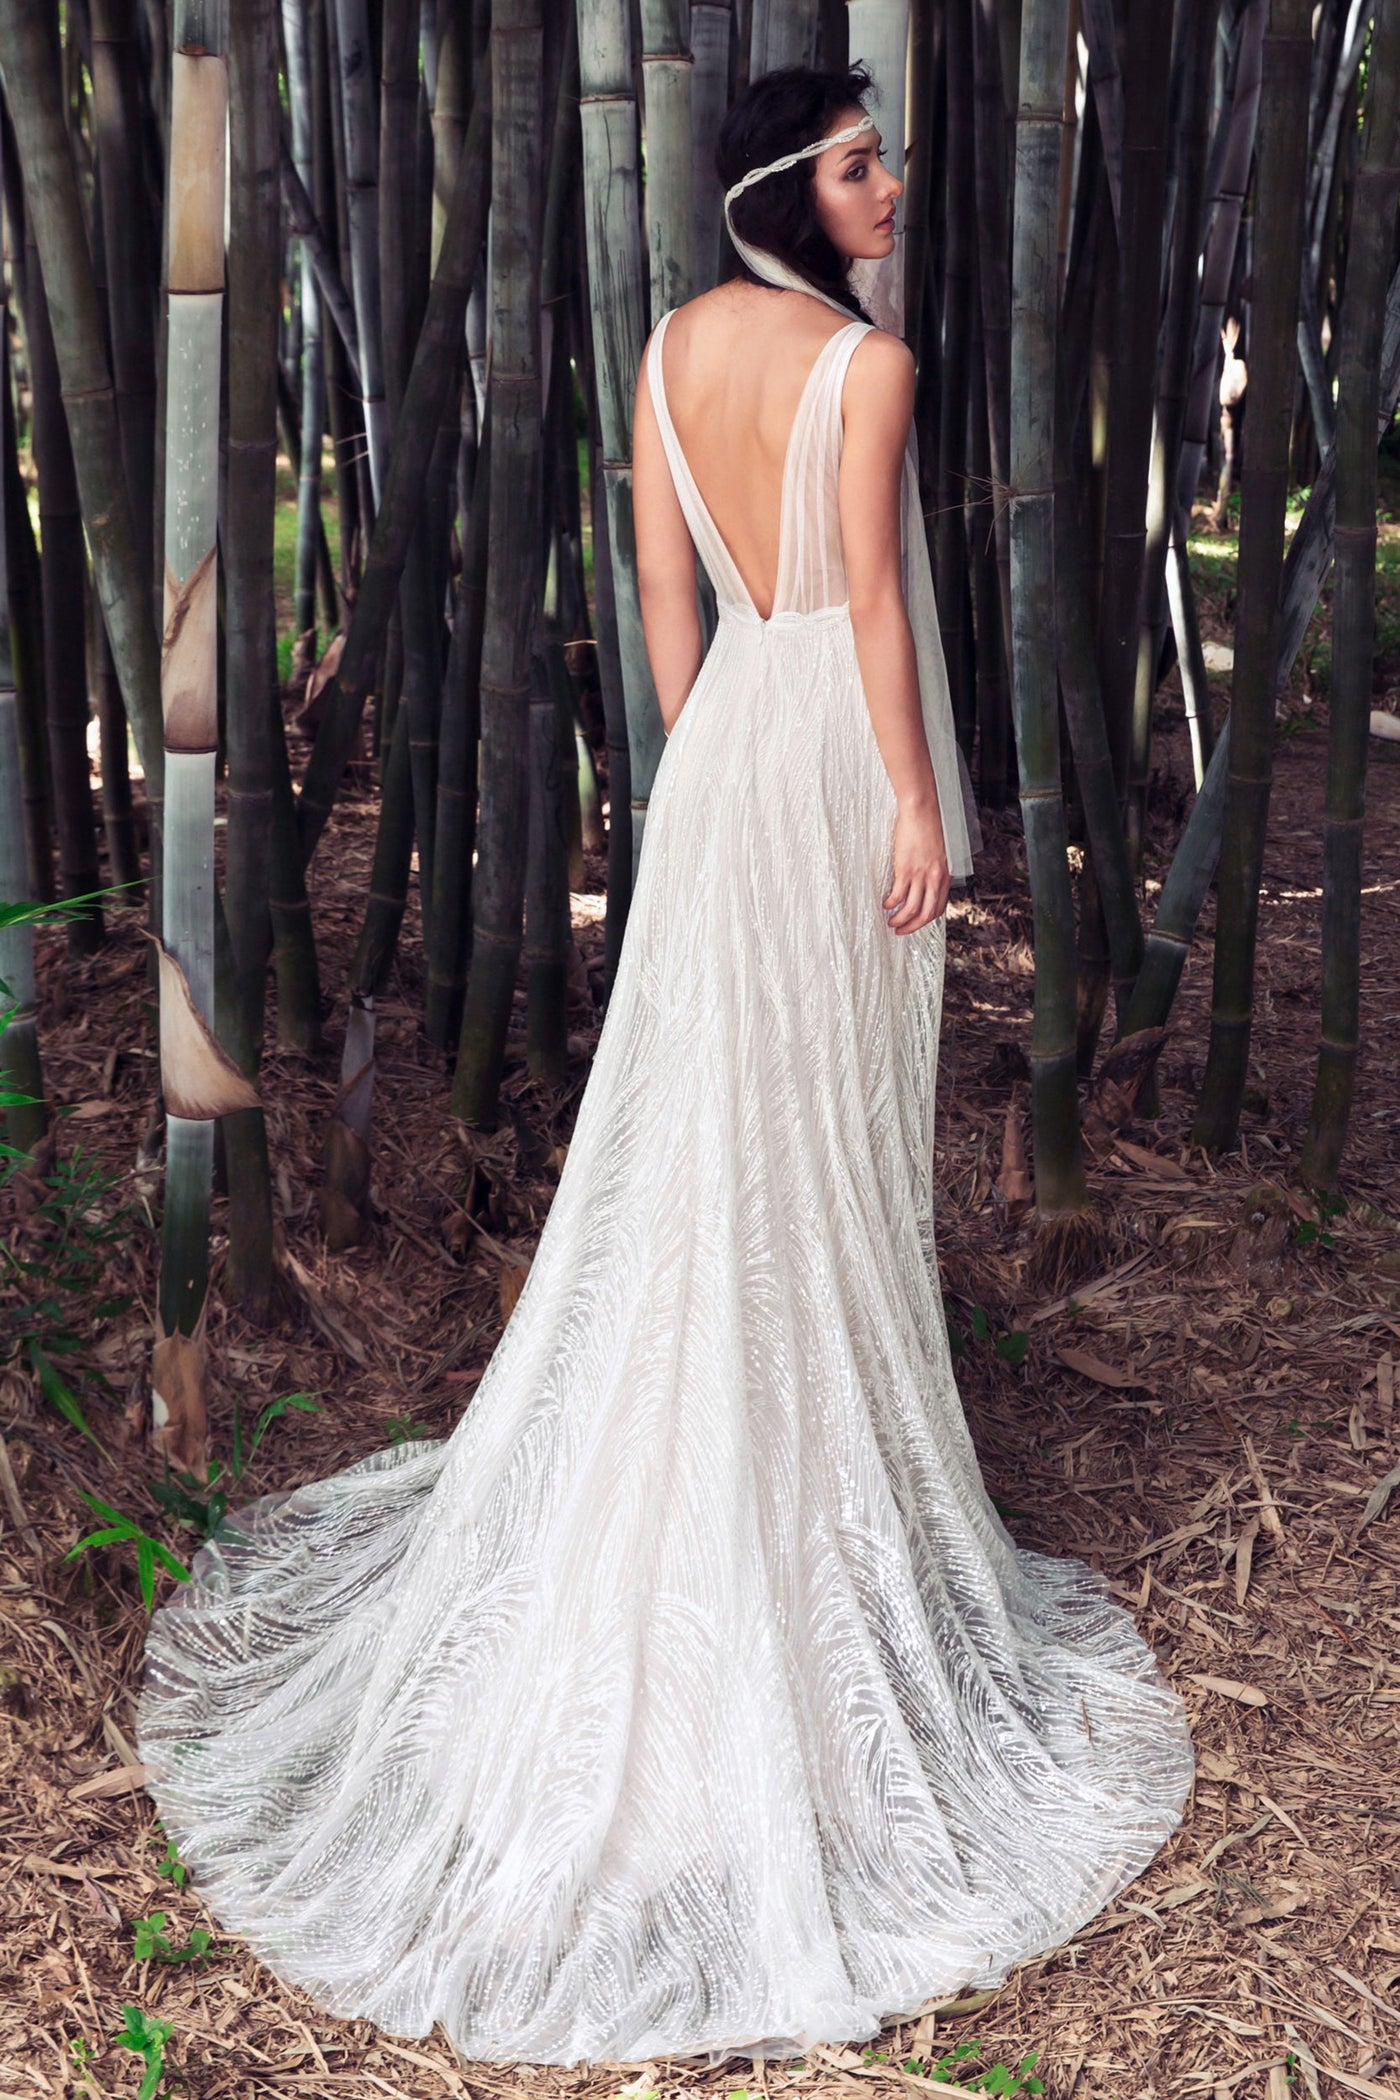 Quill - Sample Gown, Online Sample Sale, Chic Nostalgia - Sample Gown - Eternal Bridal